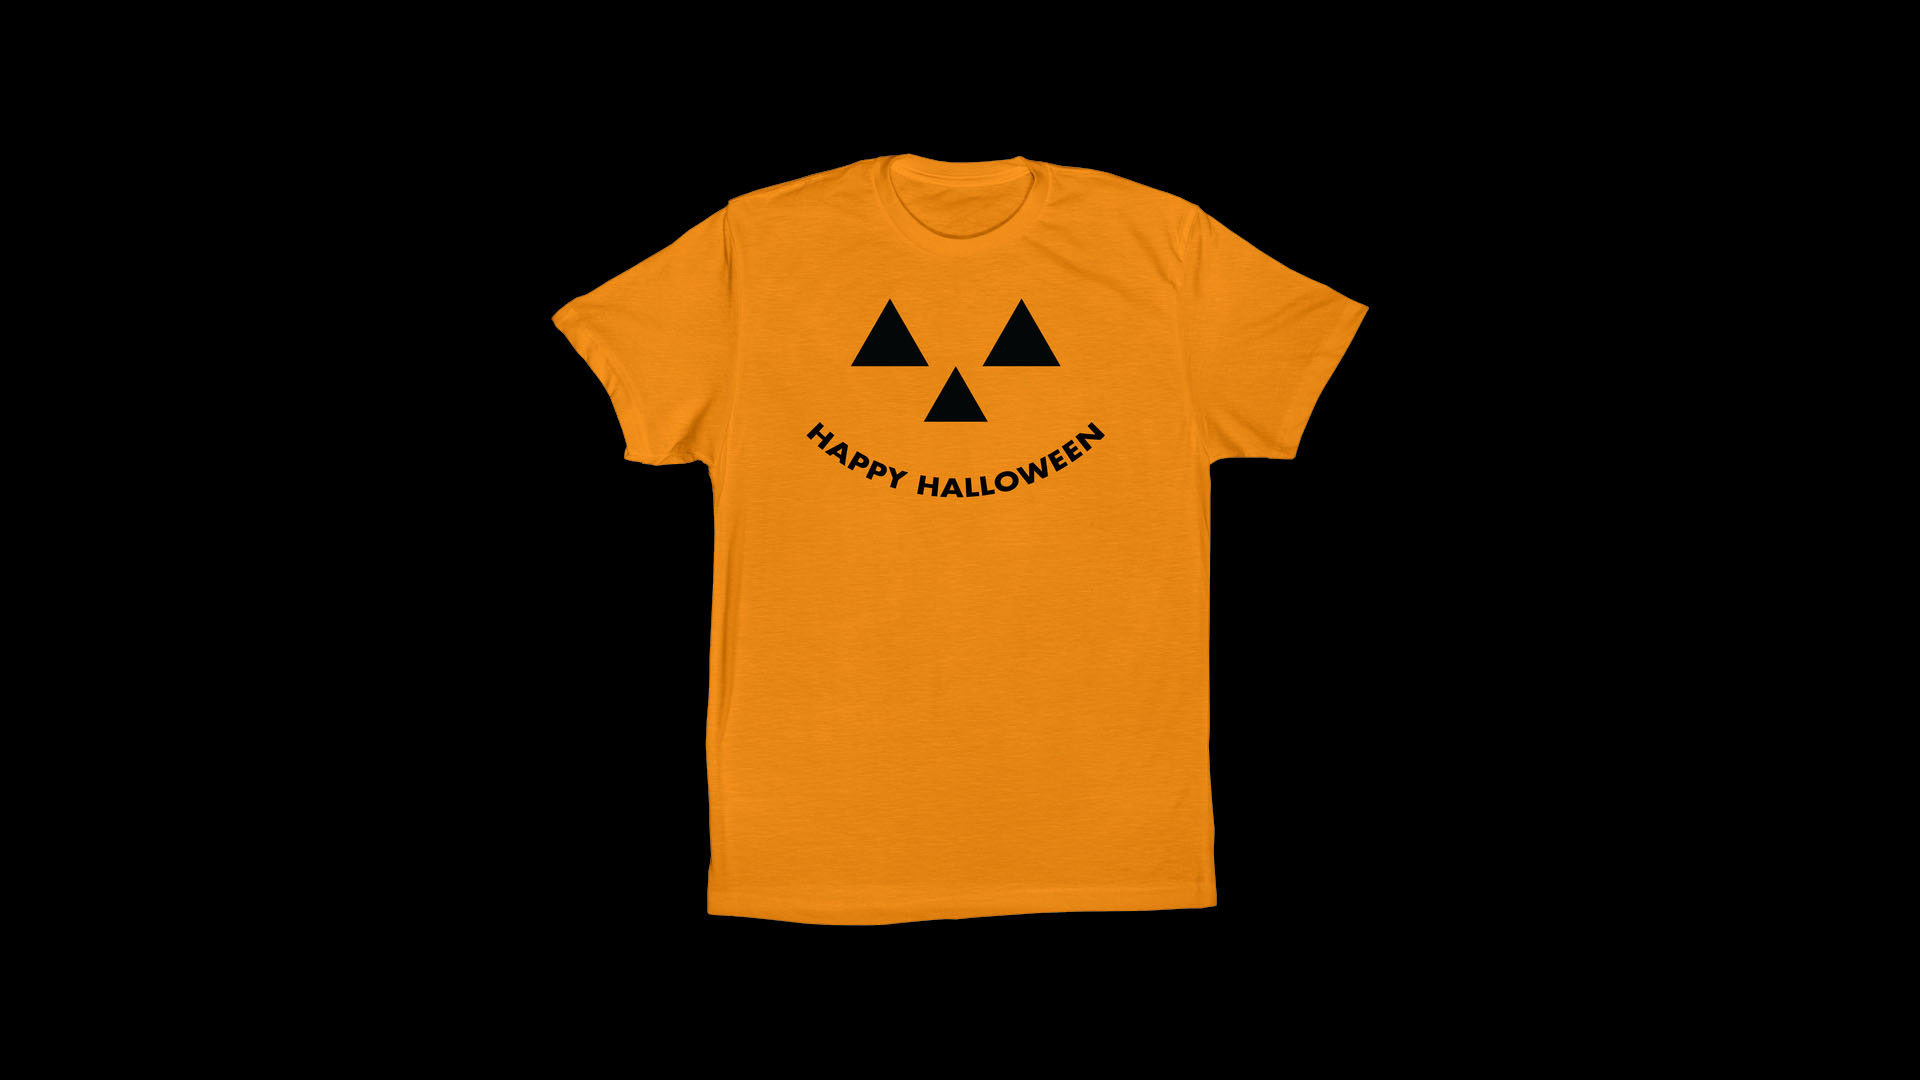 Happy Halloween Shirt Preview